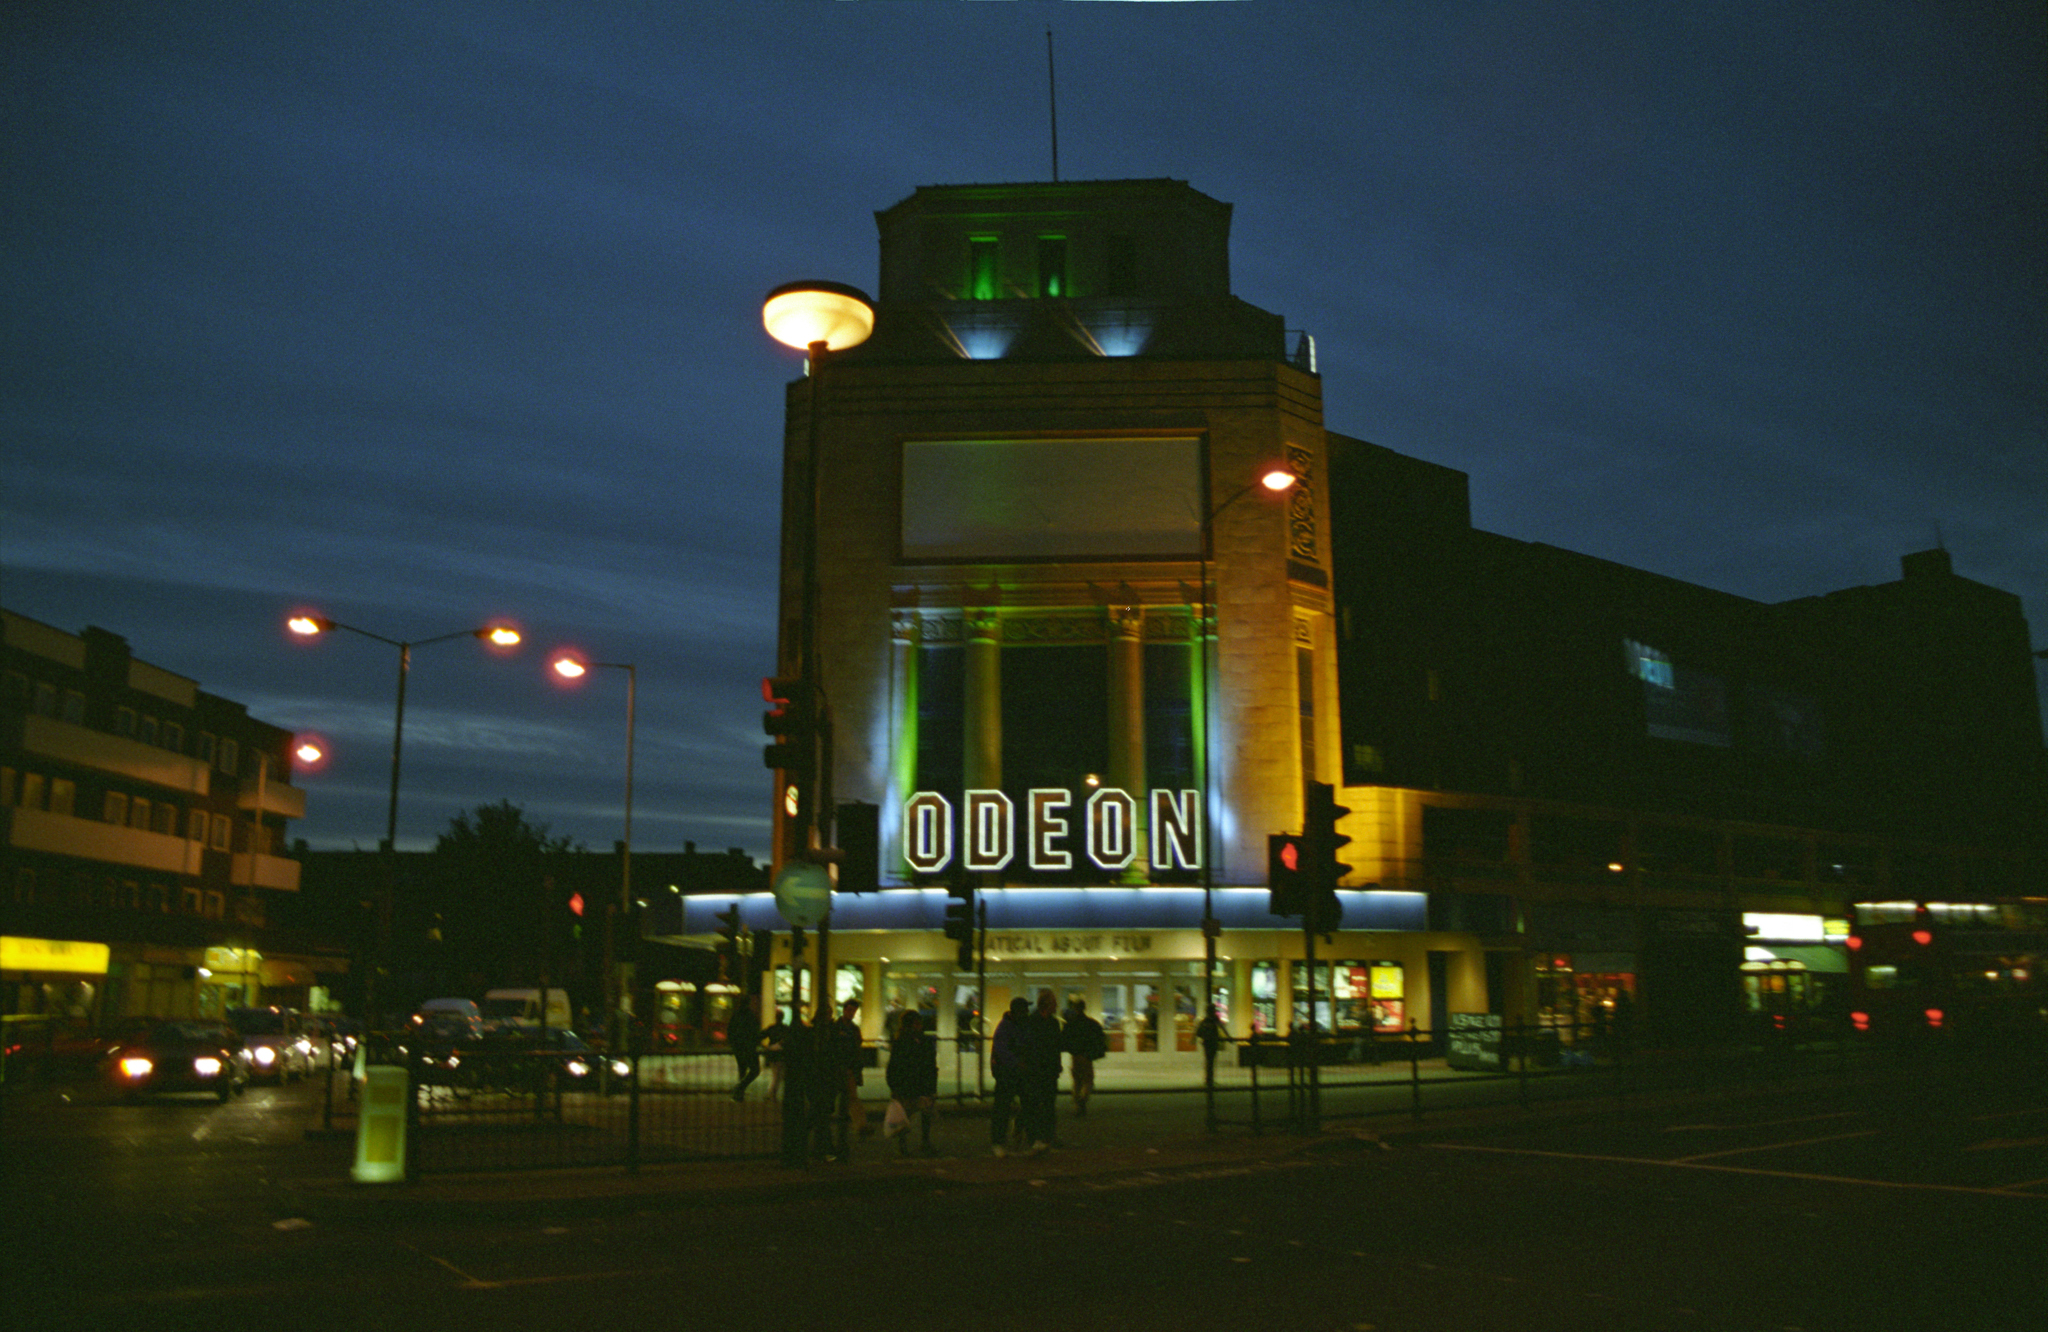 My First Job in Londontown at the Holloway Rd Odeon Cinema